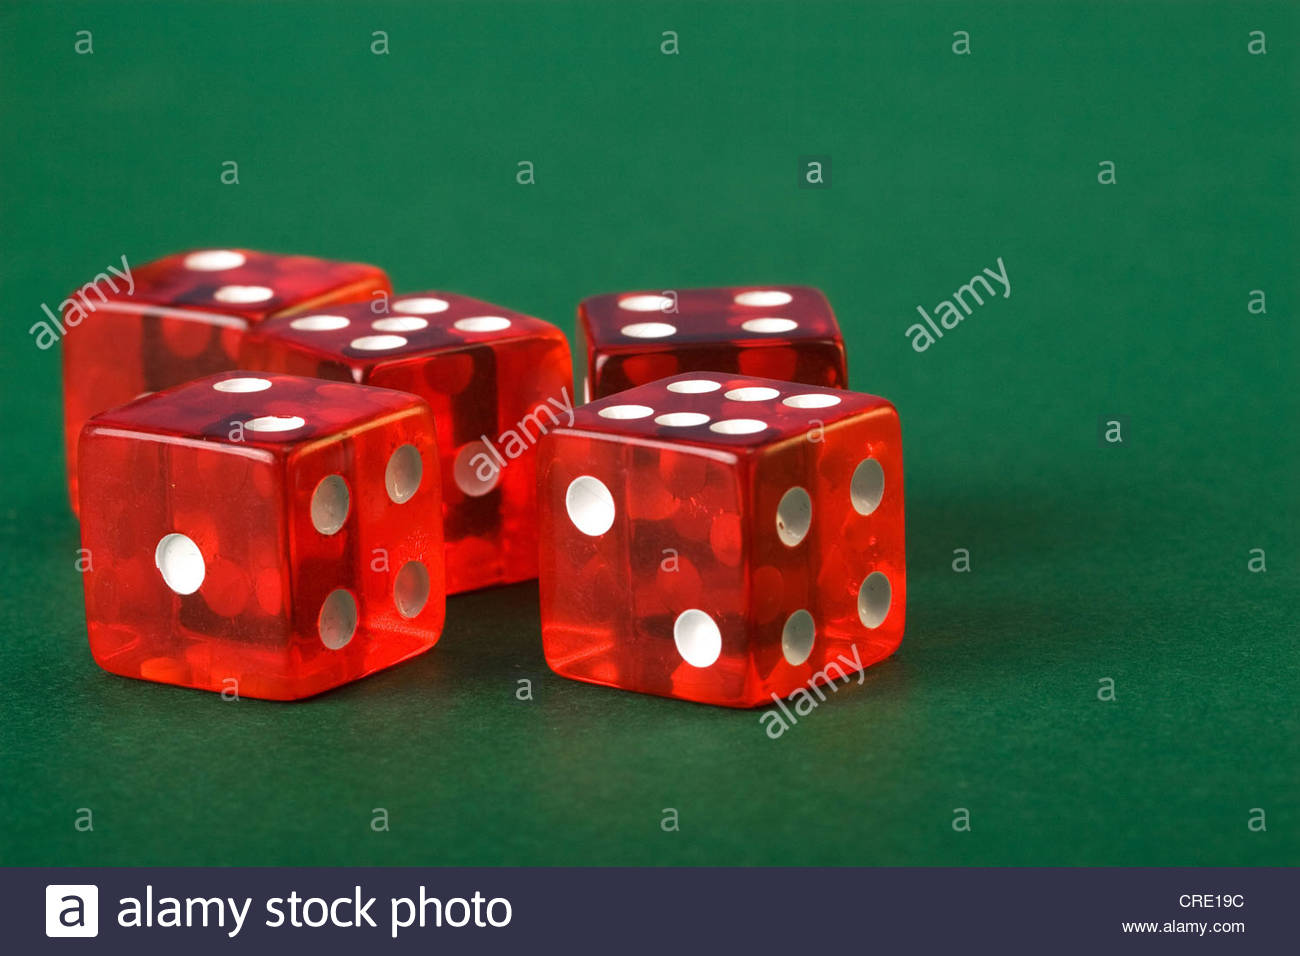 five dices with nineteen points - Stock Image